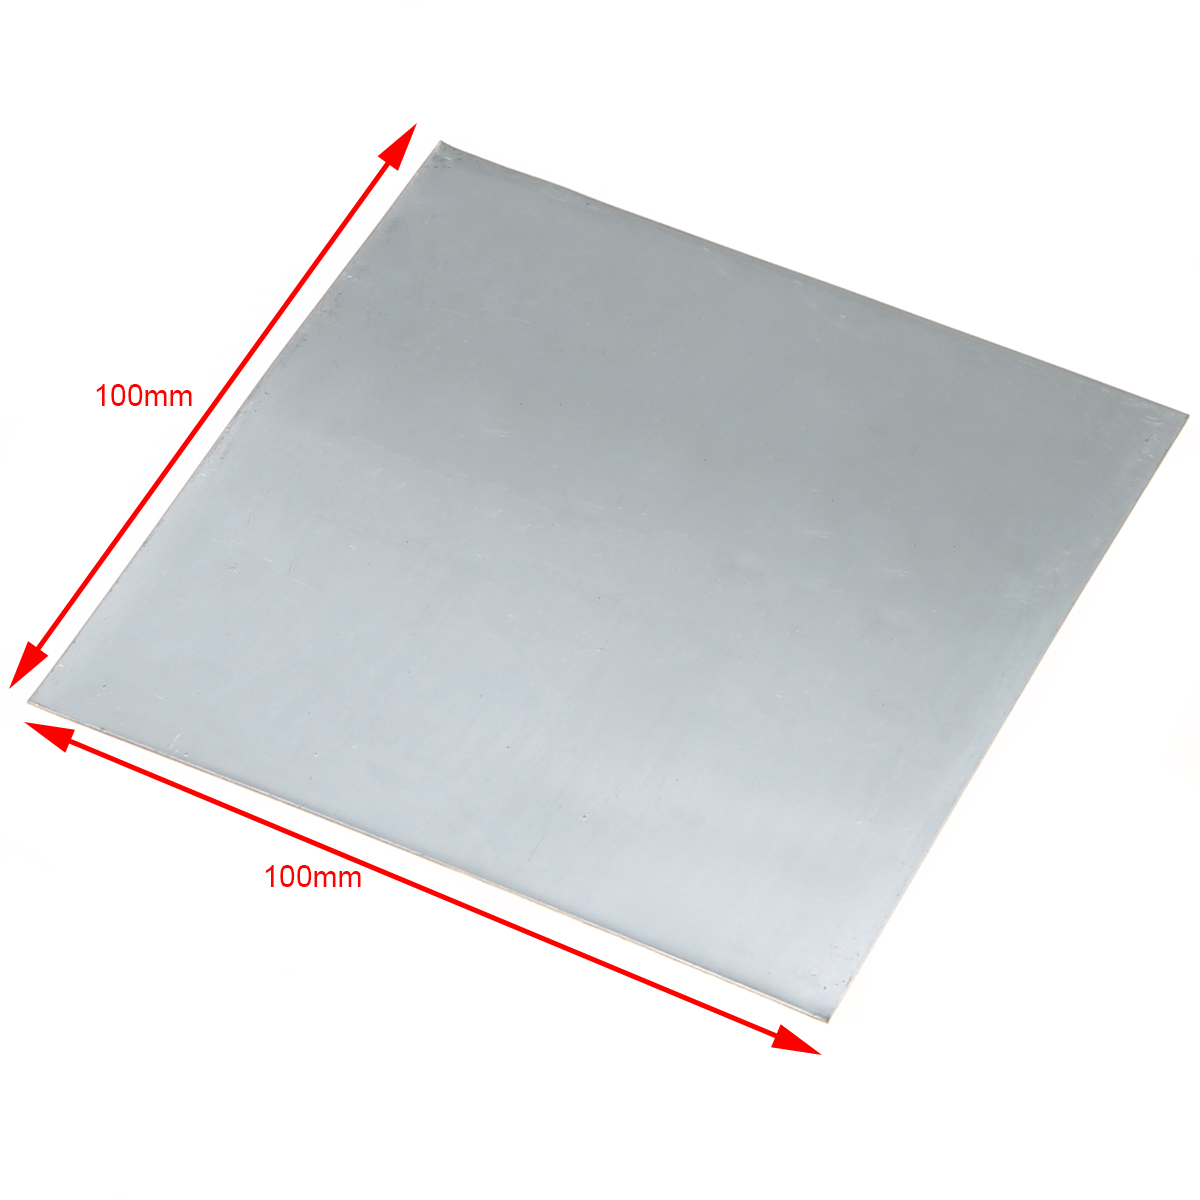 1pc 0.2mm Thickness 99.9% Pure Zinc Zn Sheet Plate 100mmx100mm For Science Lab Accessories 1sheet matte surface 3k 100% carbon fiber plate sheet 2mm thickness